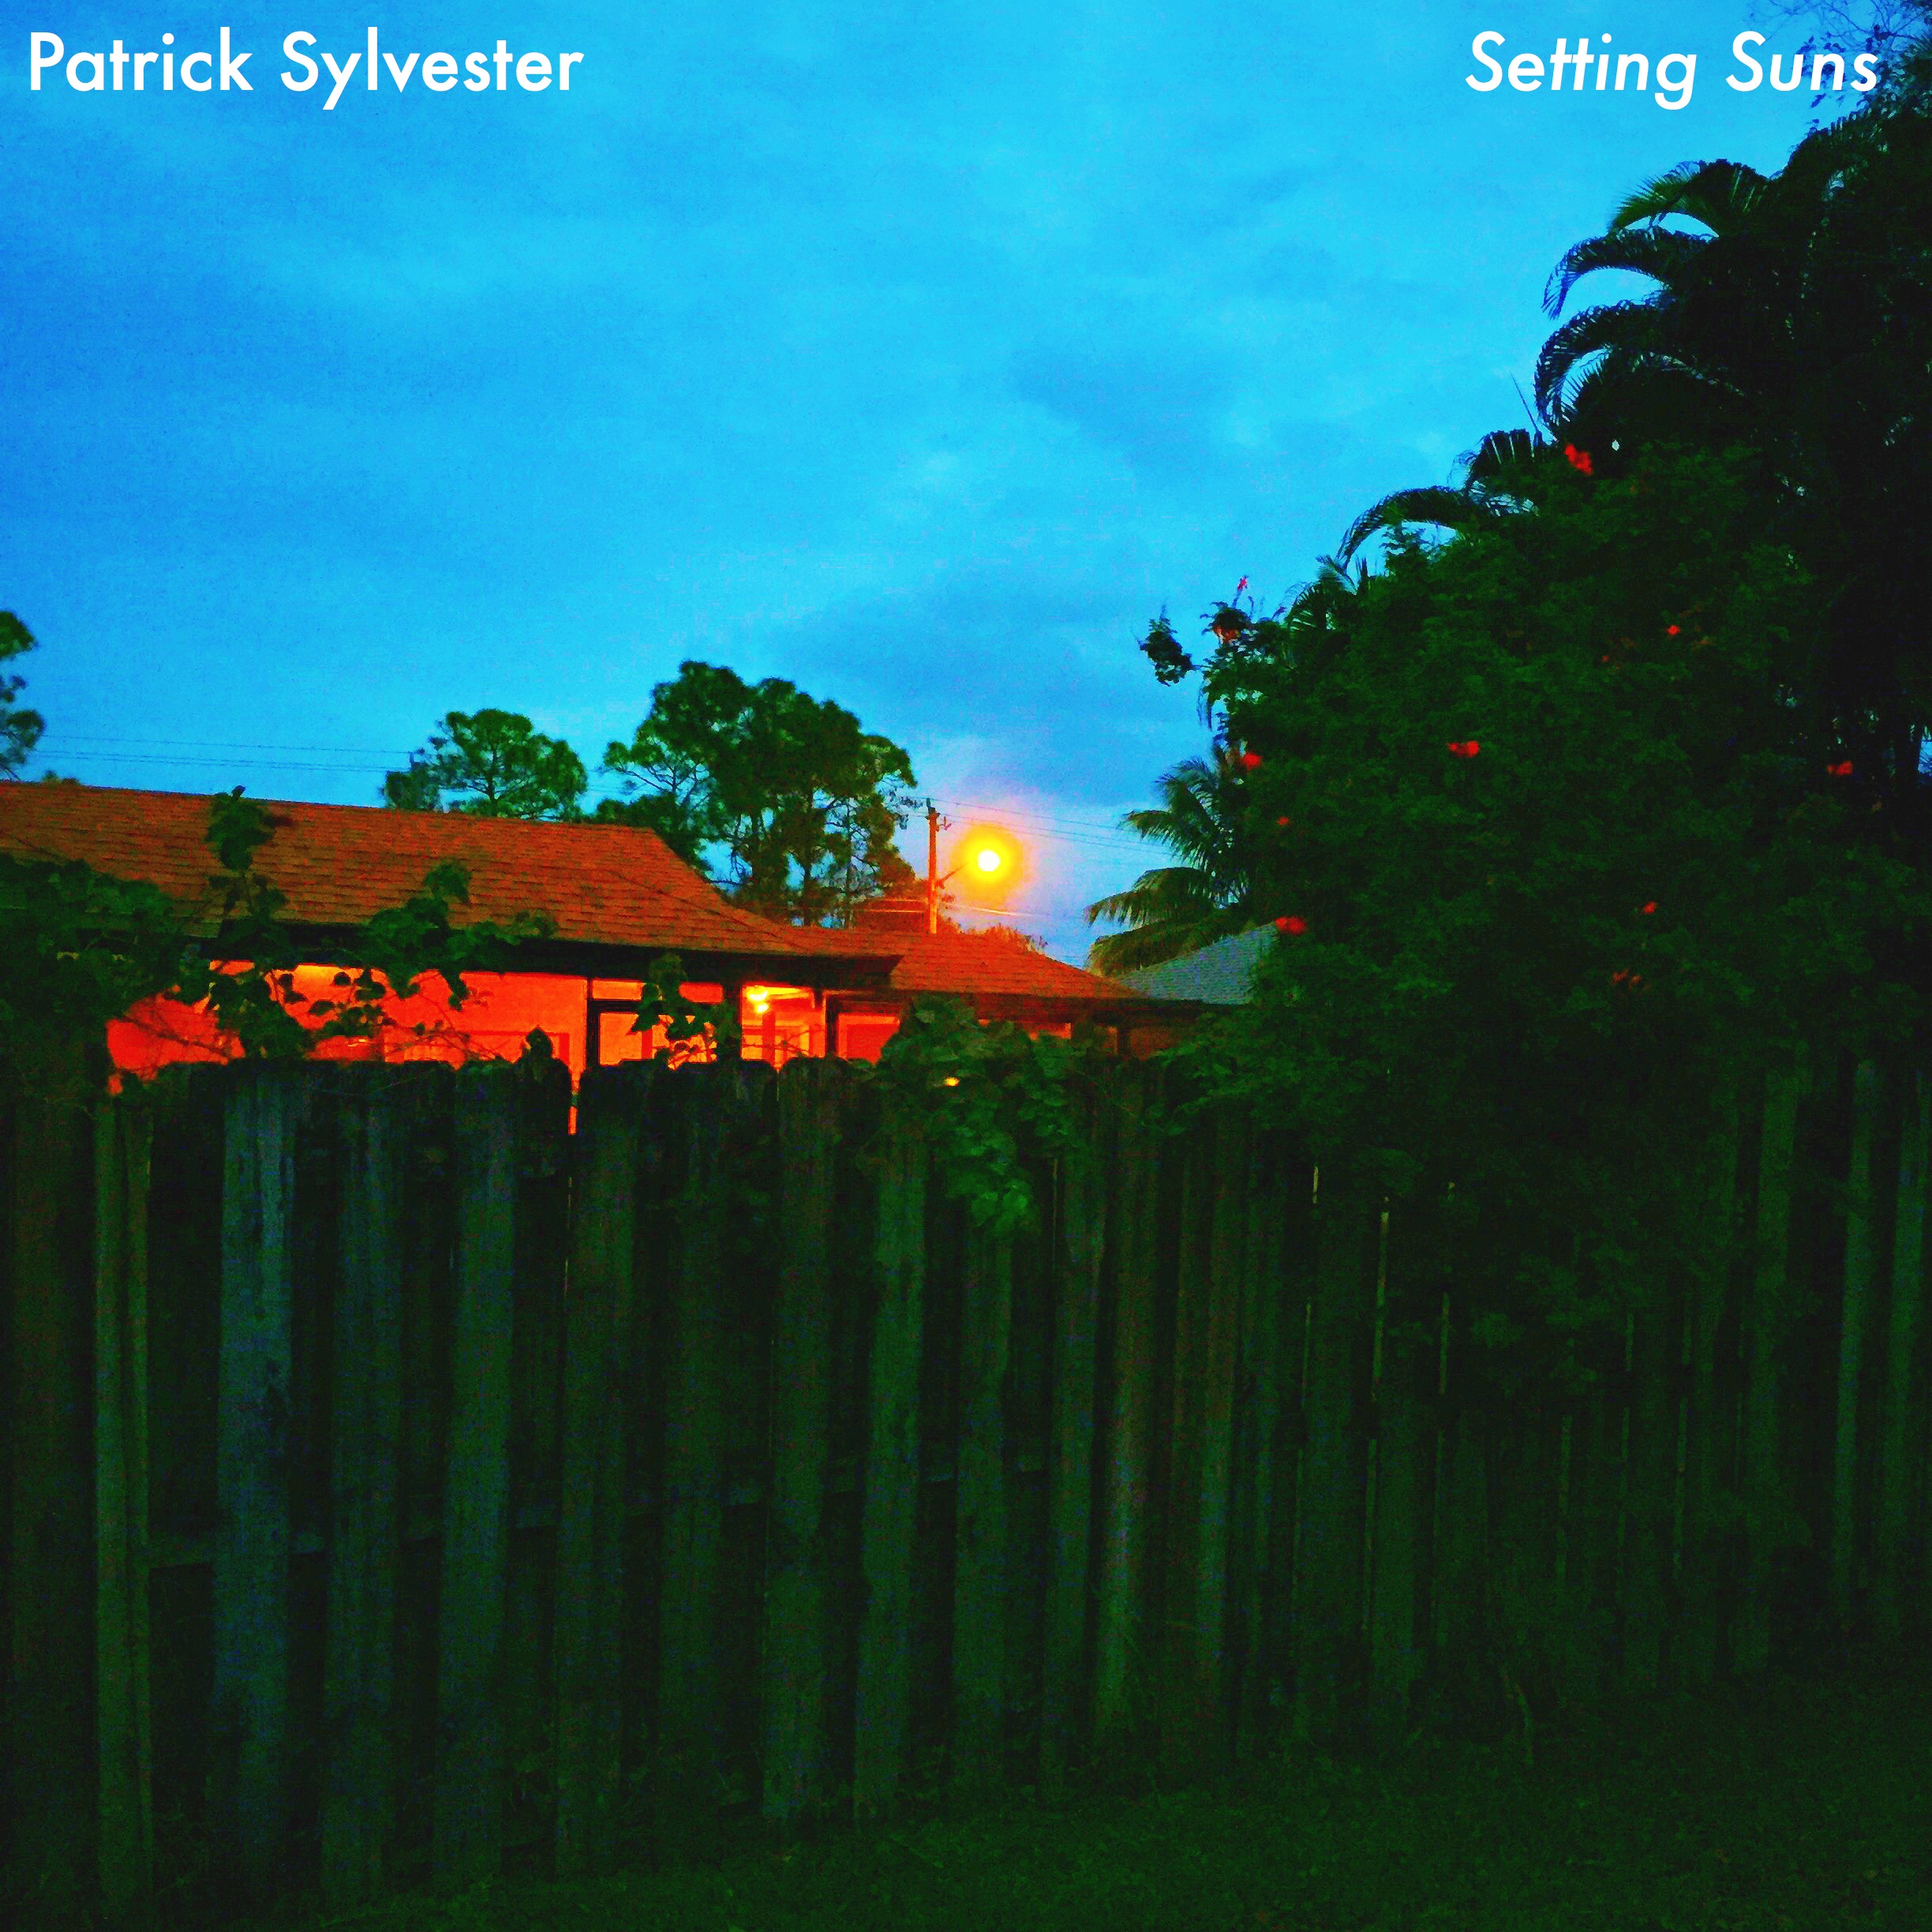 Setting Suns - EP  Release Date: February 8th, 2016   Cover Art: Patrick Sylvester (Photographer)   SoundCloud:     Setting Suns - EP